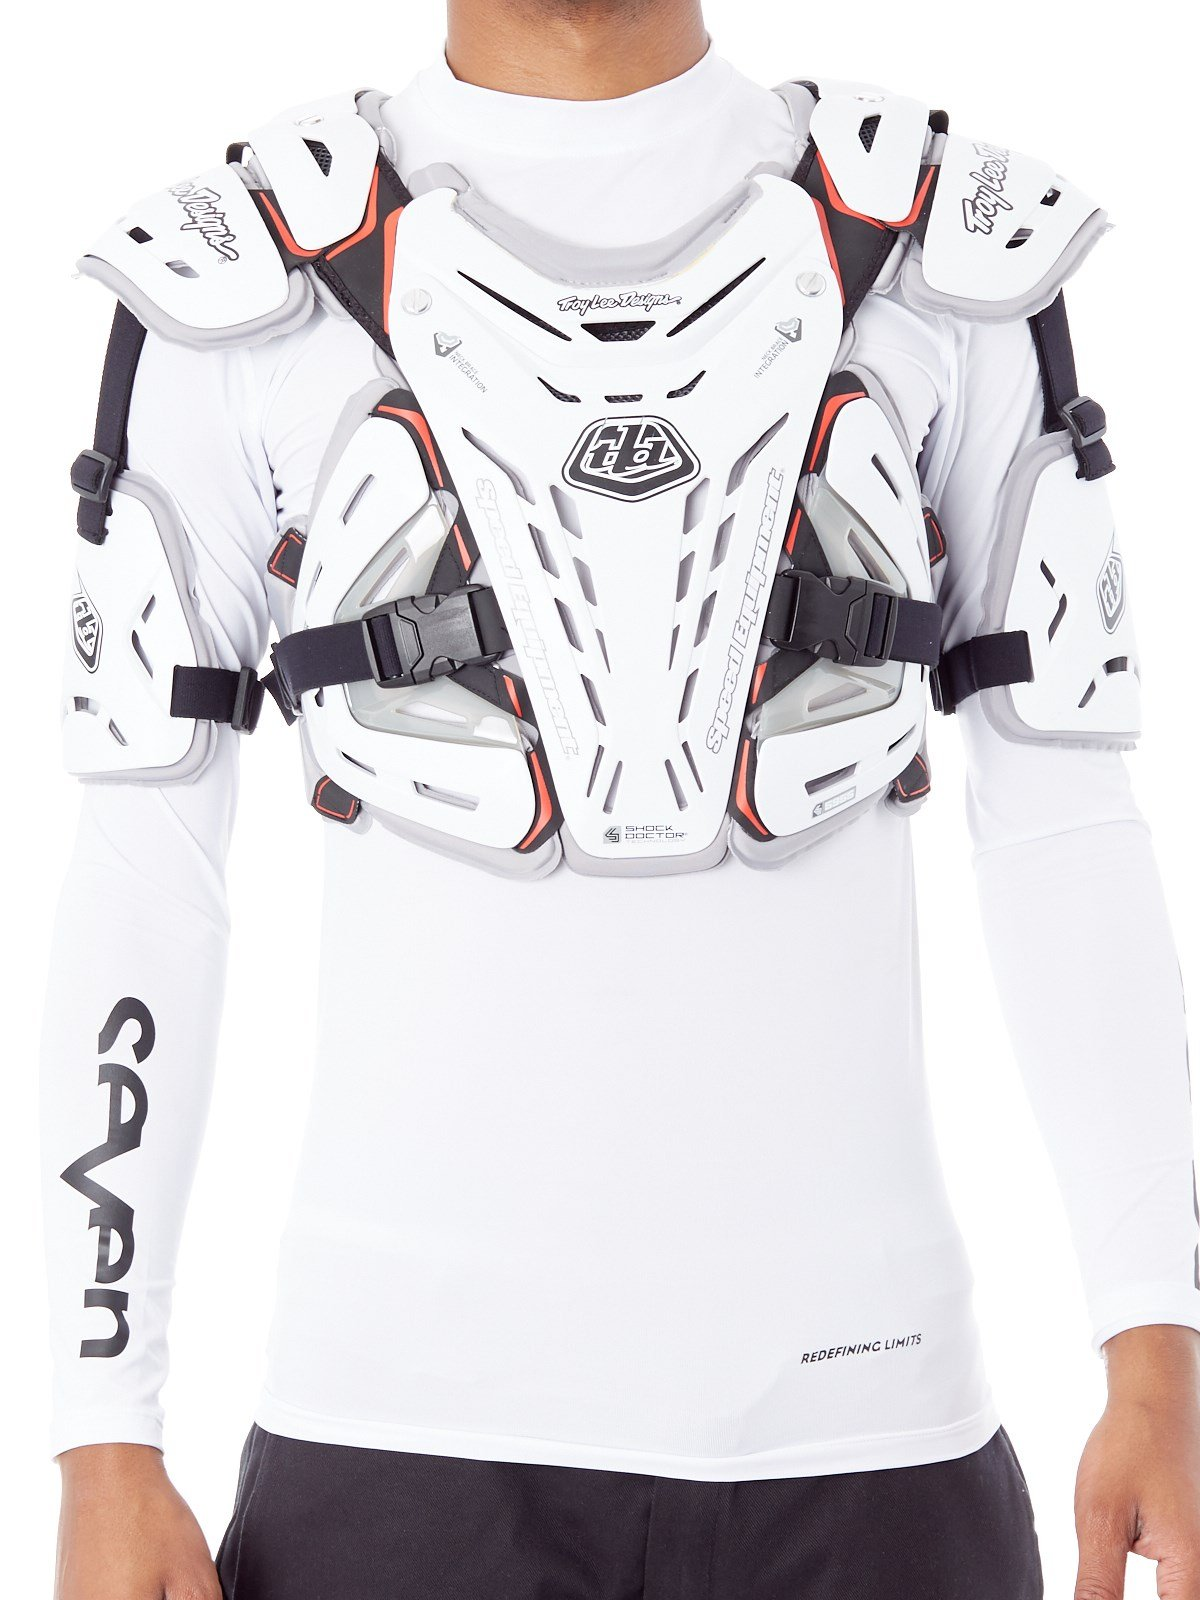 Troy Lee Designs 5955 Chest Body Guard-White-L by Troy Lee Designs (Image #2)